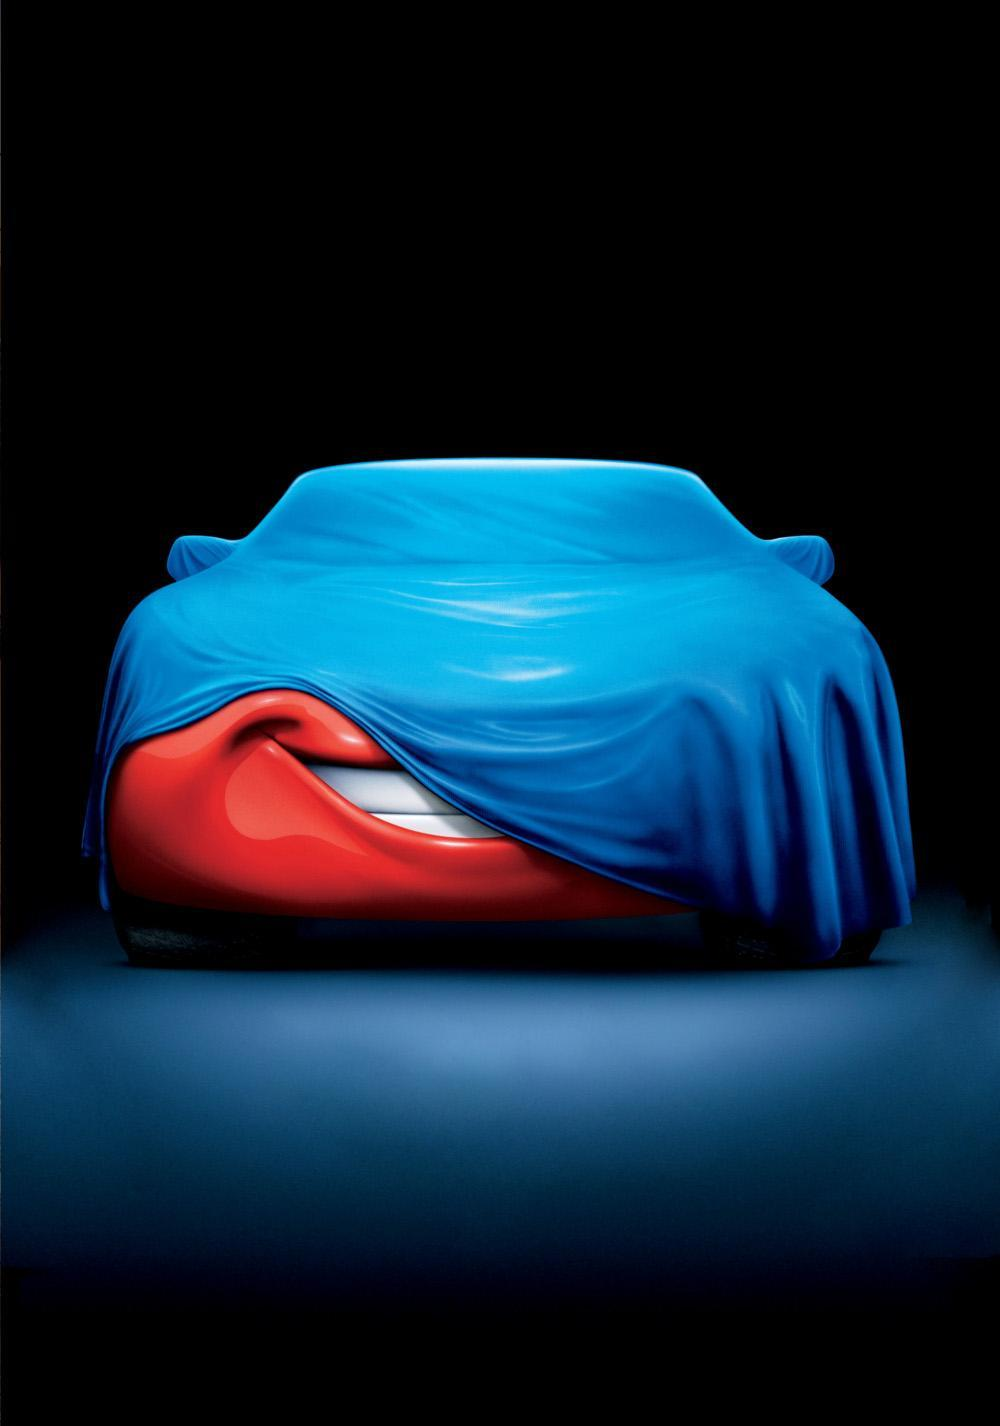 Cars 3 Wallpapers Hd For Android Apk Download